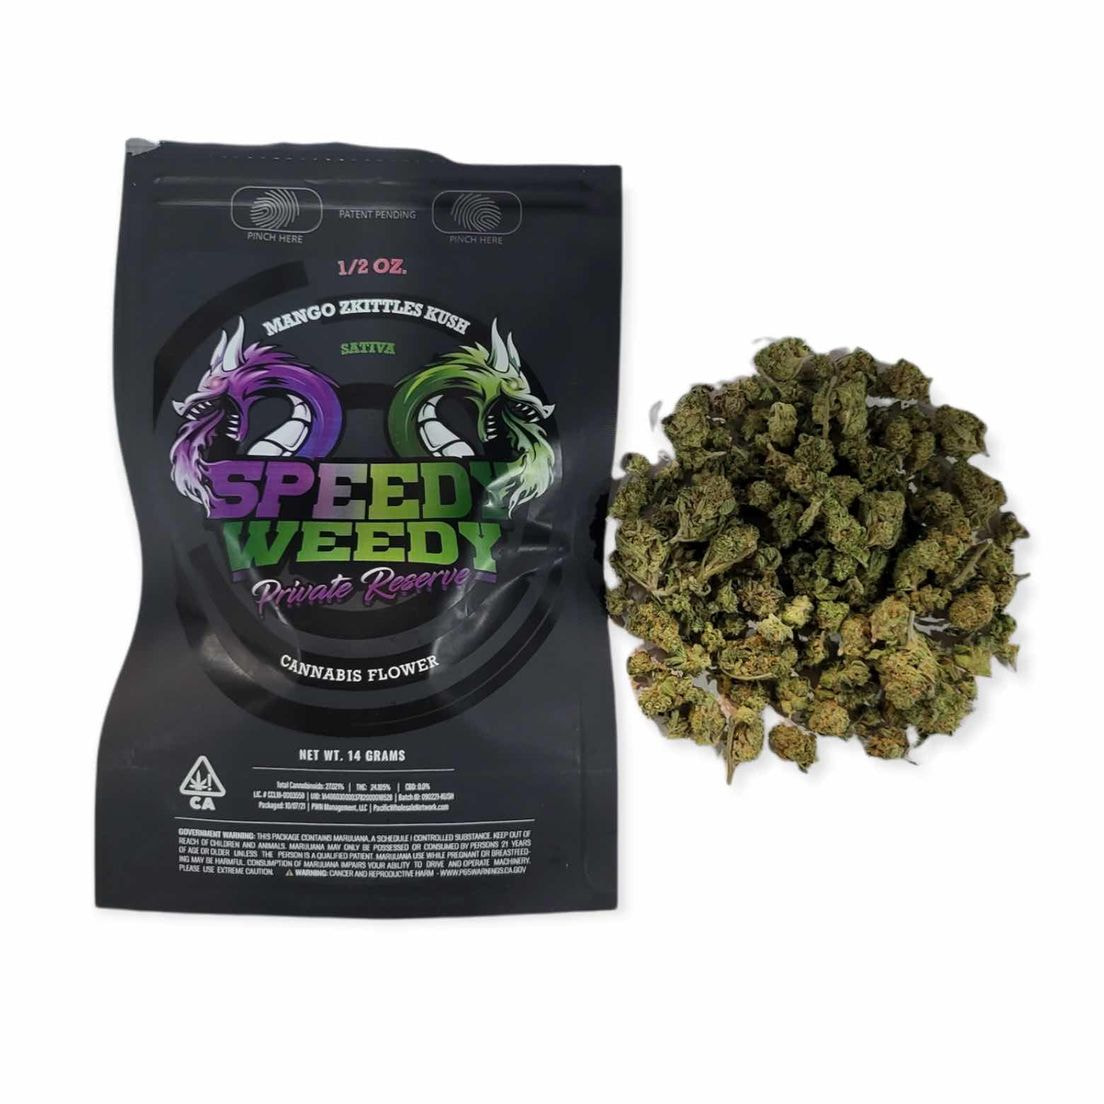 1. Speedy Weedy 28g Small Flower - Quality 8/10 - Sherbmint Cookies (~29% THC)